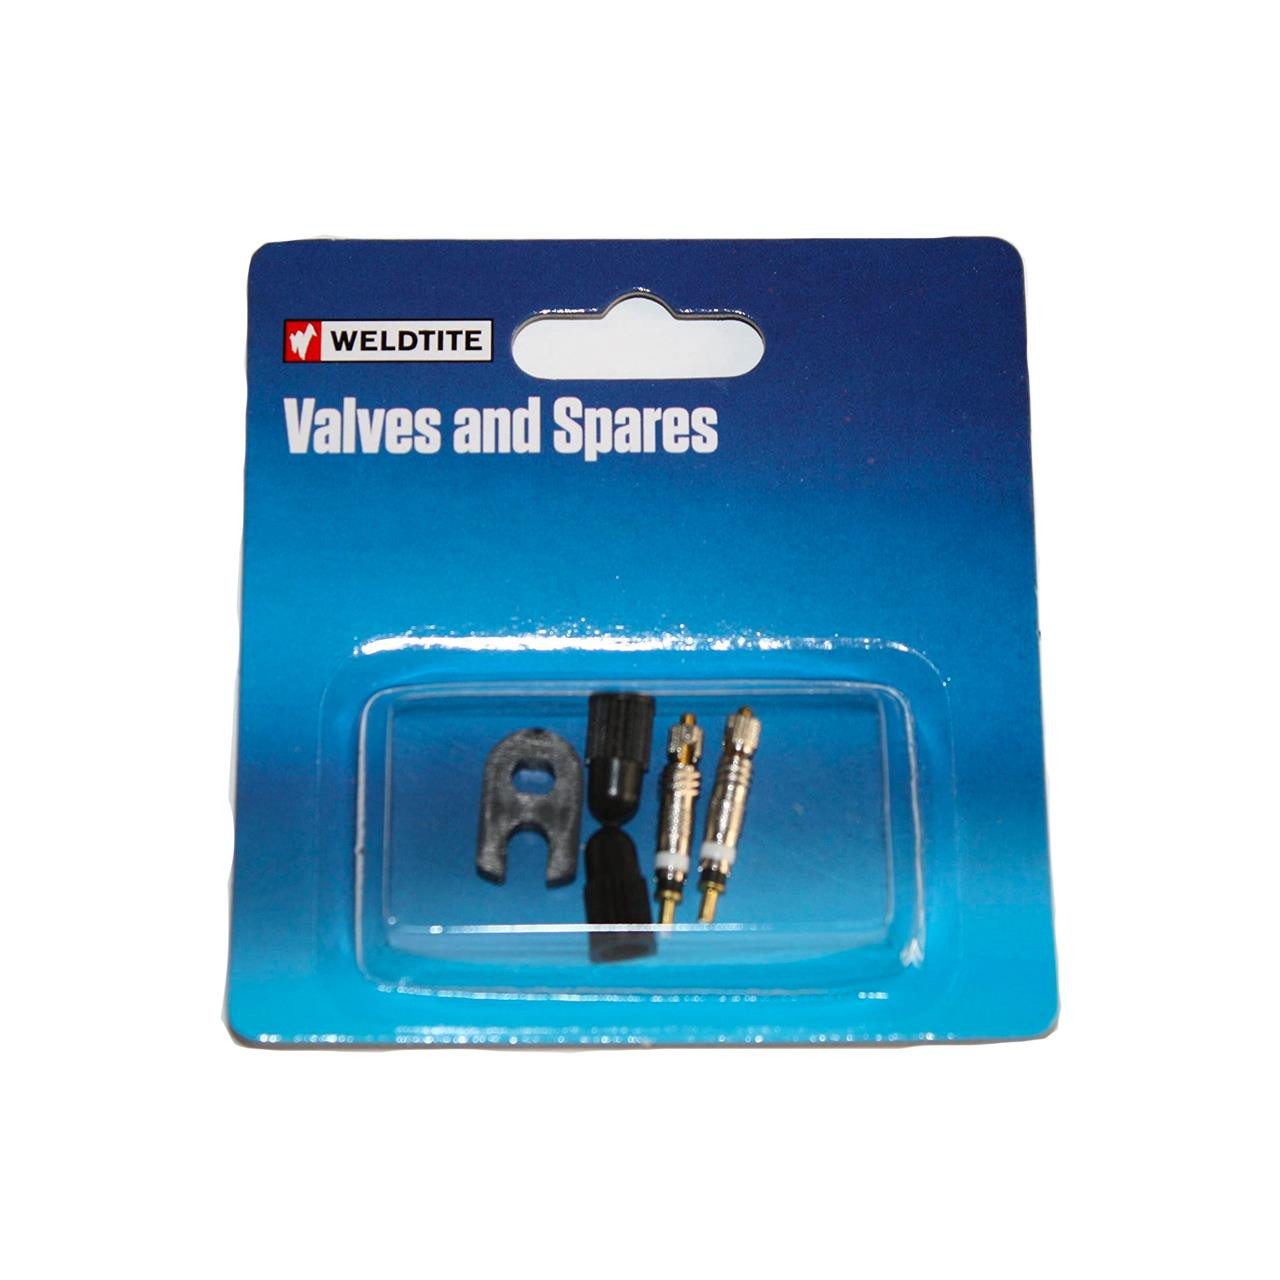 Weldtite Presta Valve Core & Caps Kit (Pack of 2)